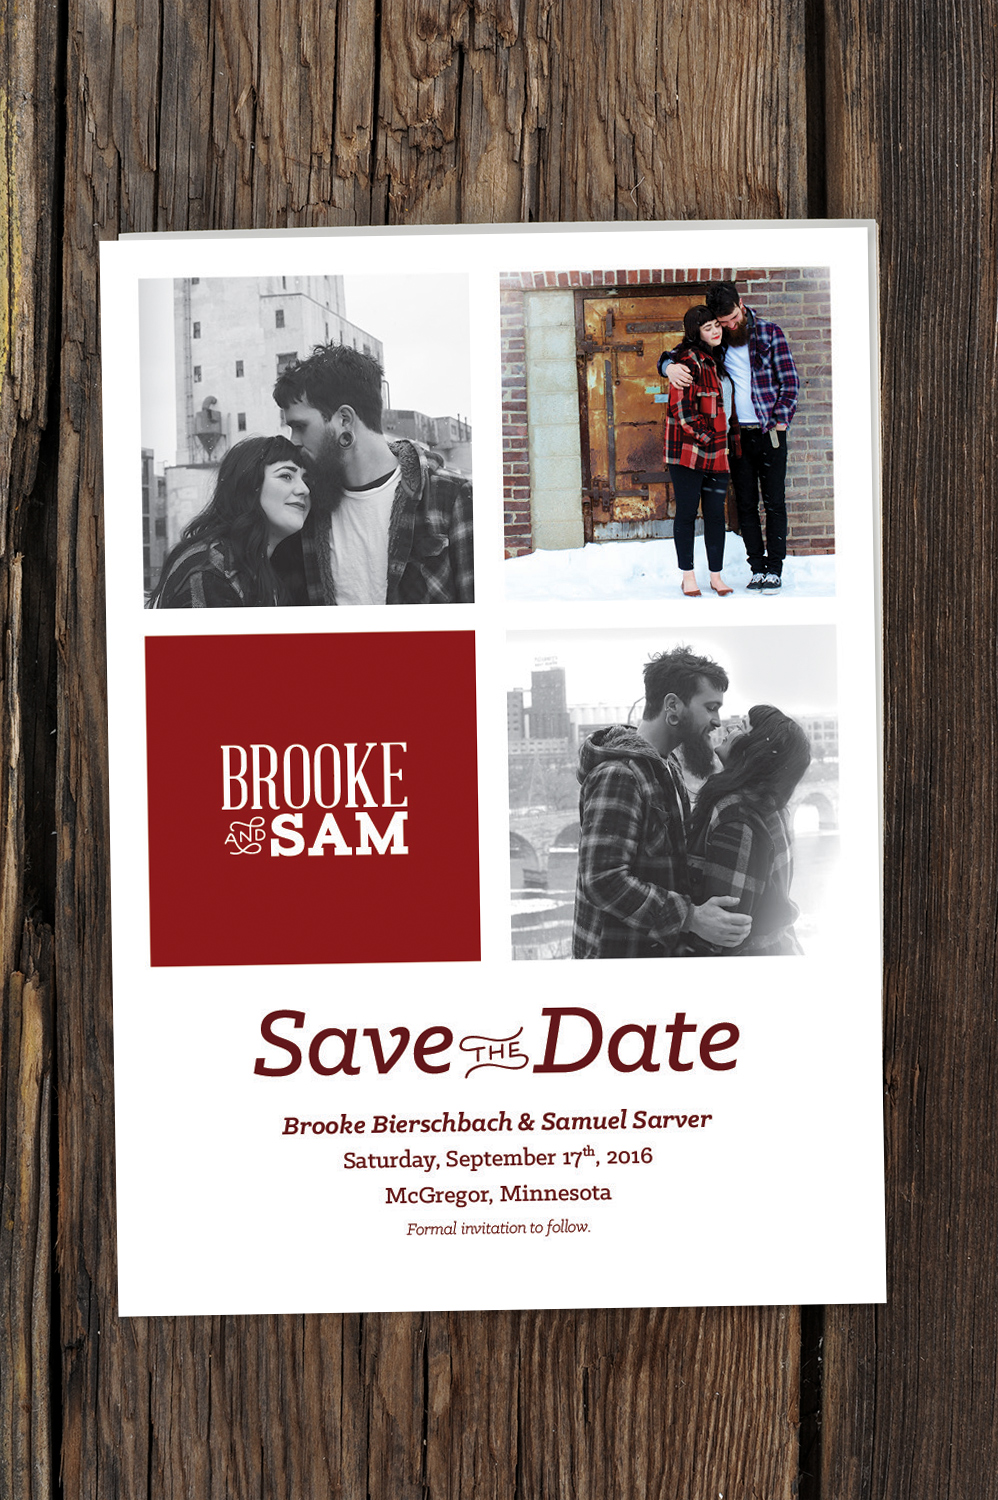 save-the-date-showcase.jpg